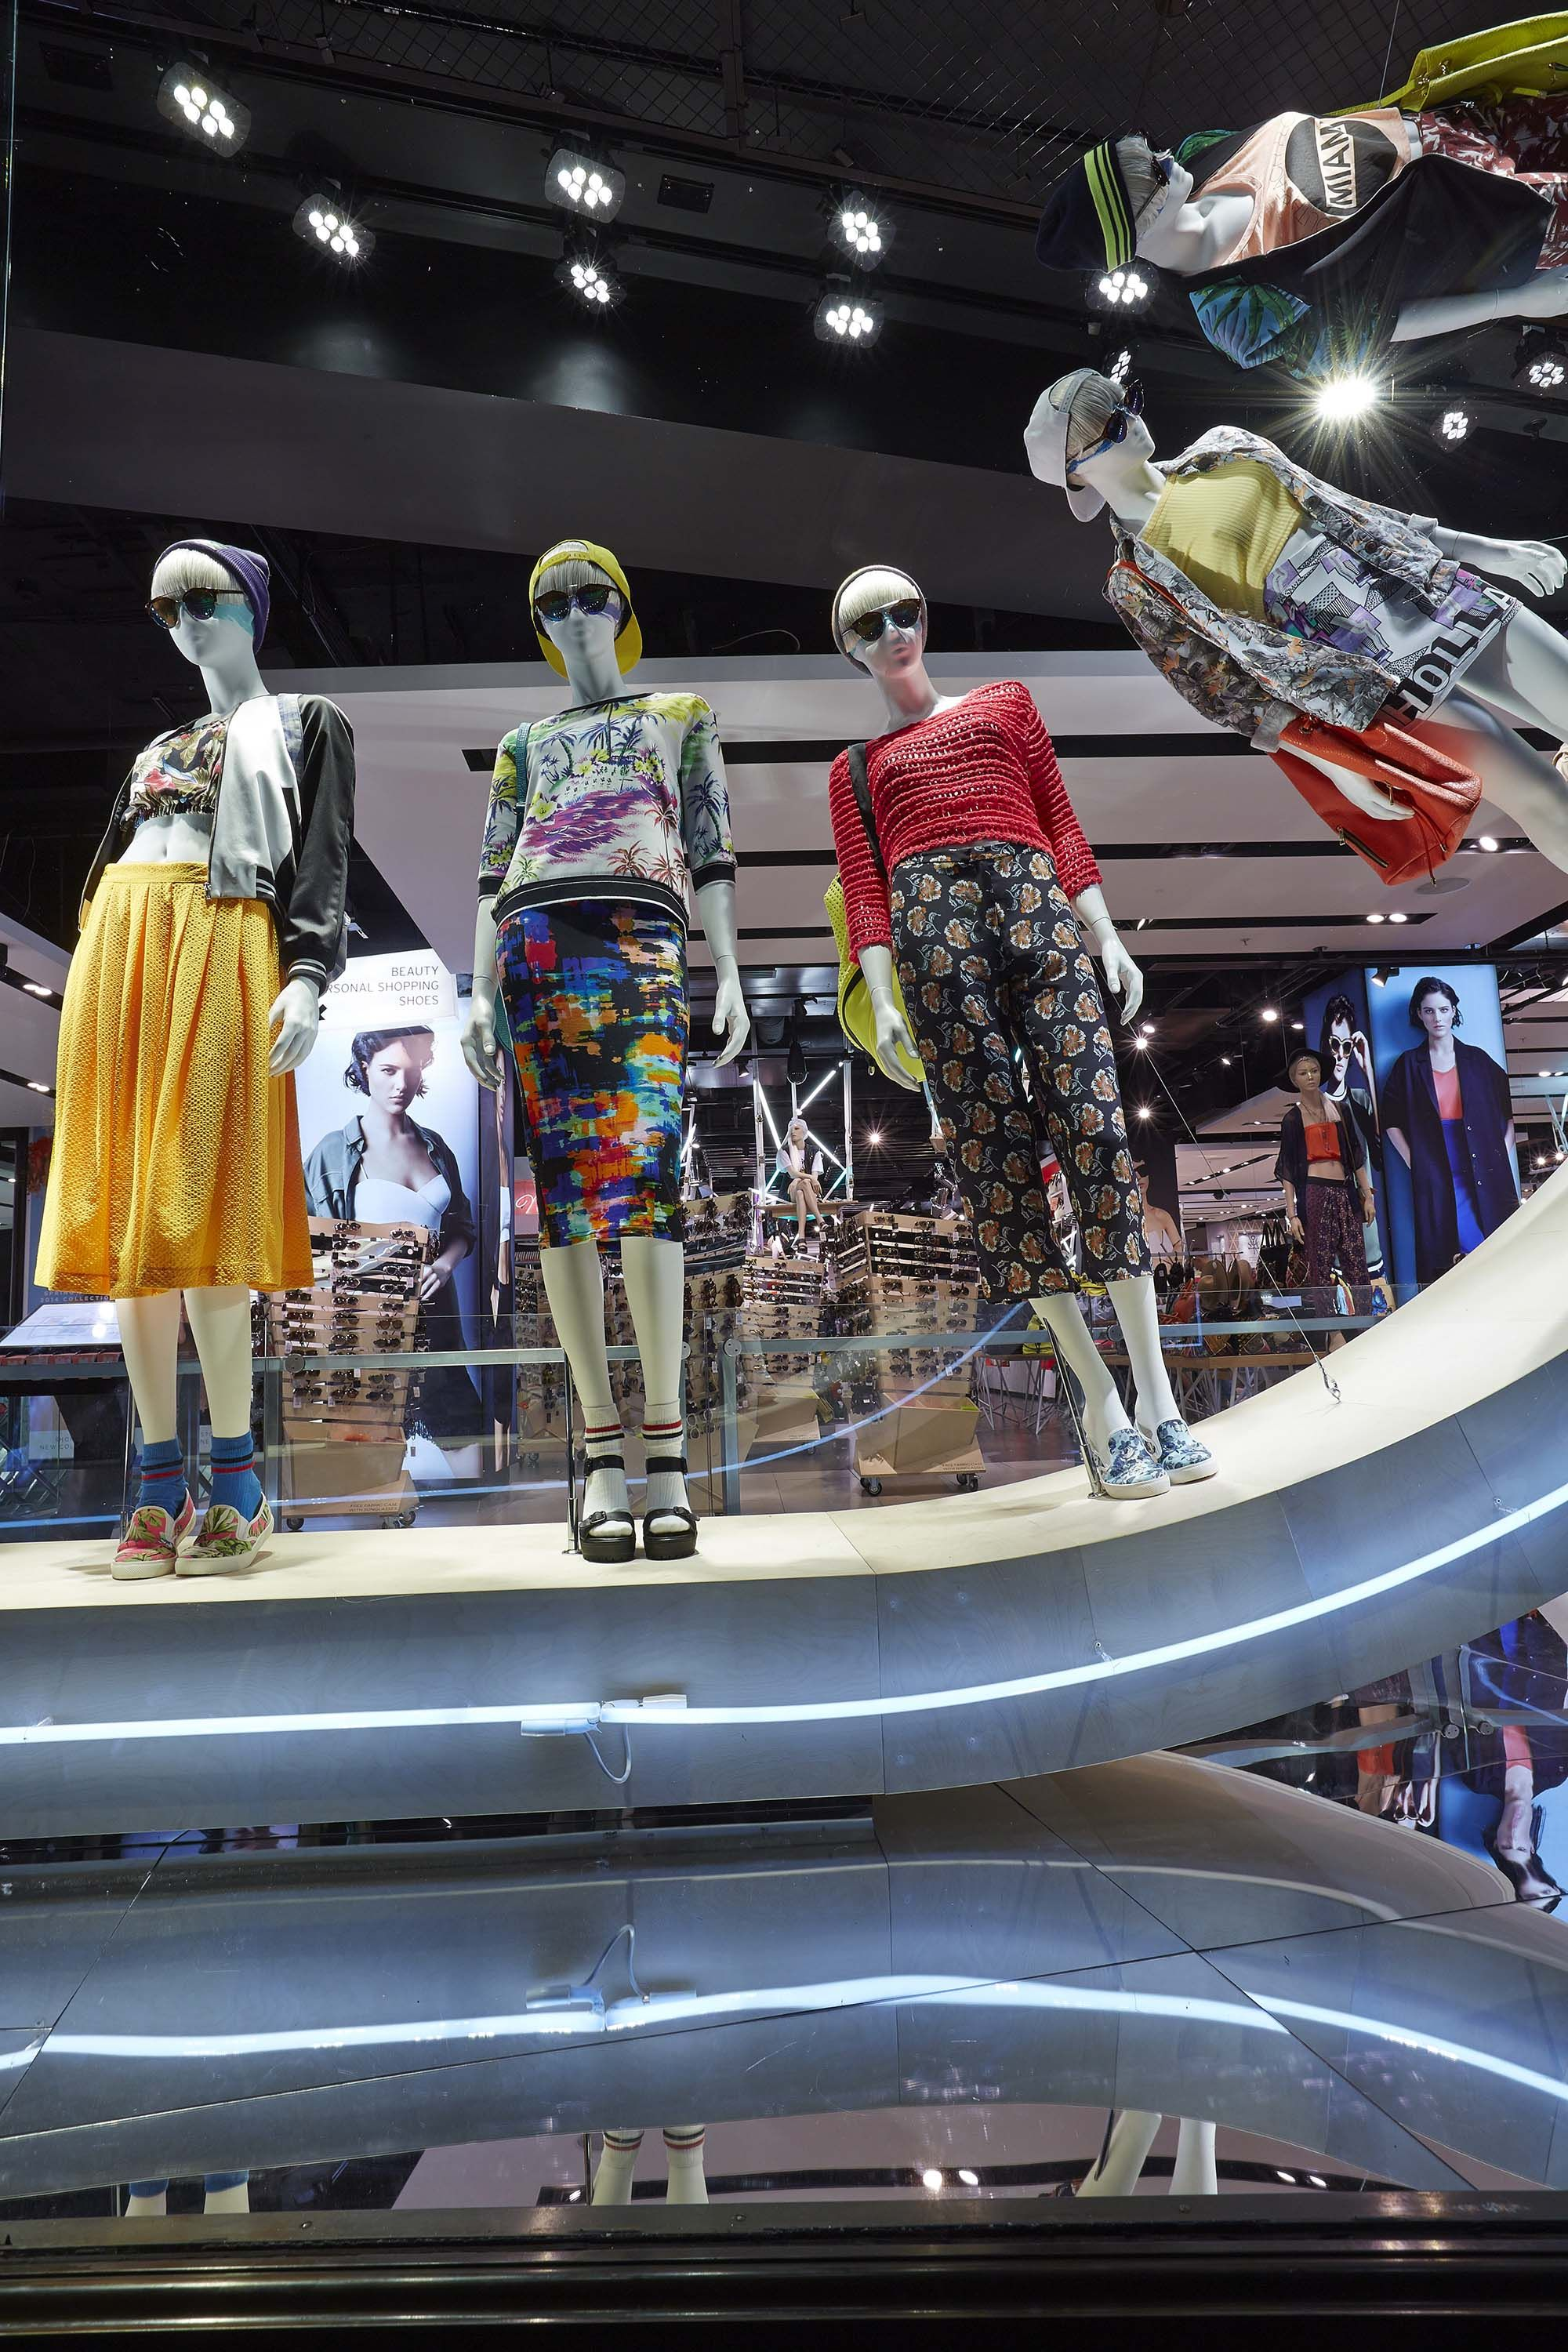 Pin by Retail Design by Essential Retail on Retail Design ... |Curved Line Display Visual Merchandising